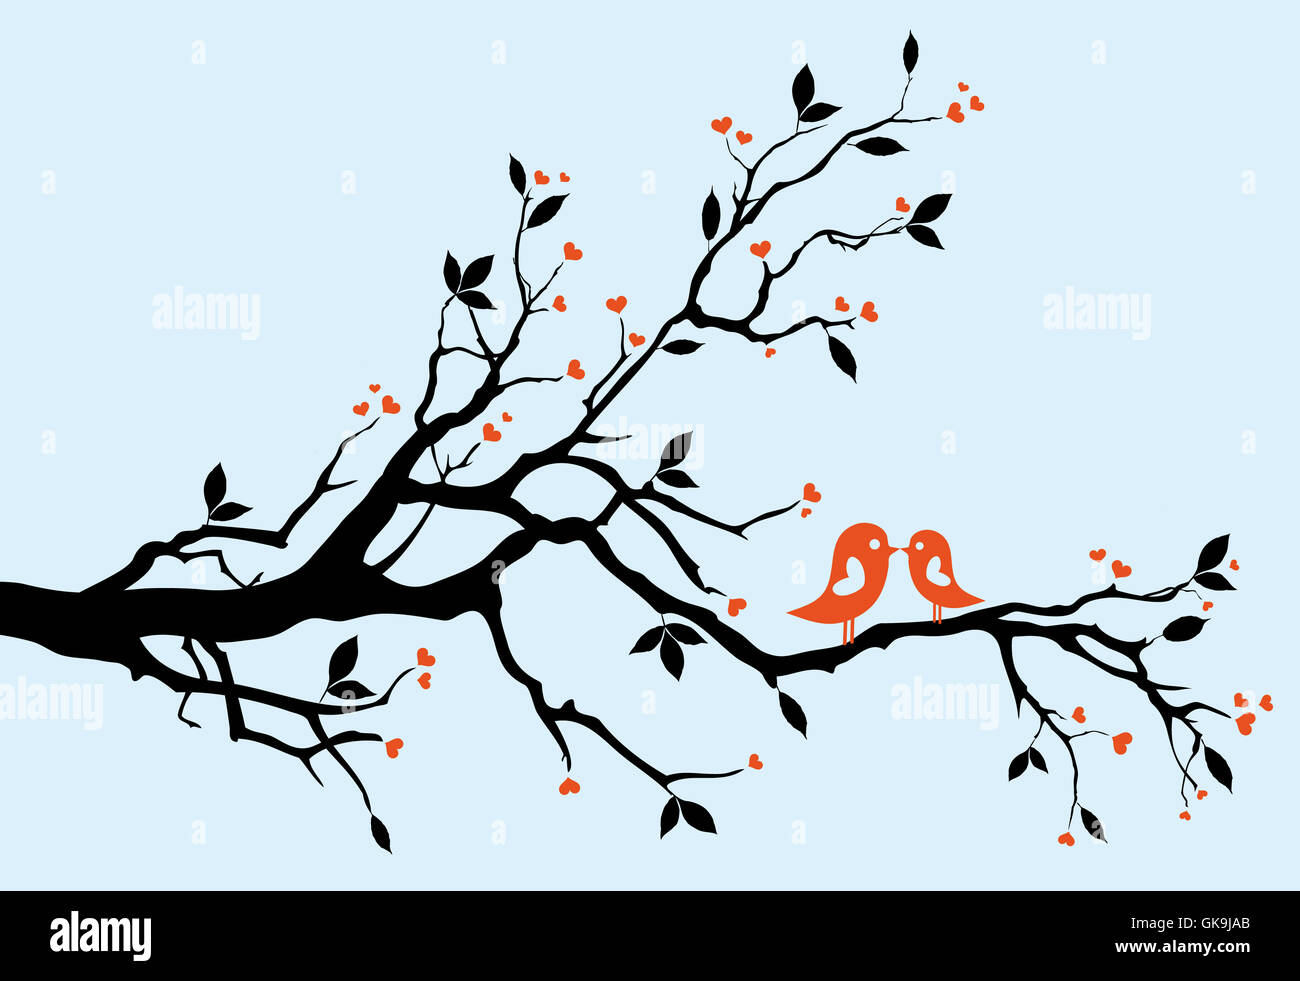 tree bird branch - Stock Image